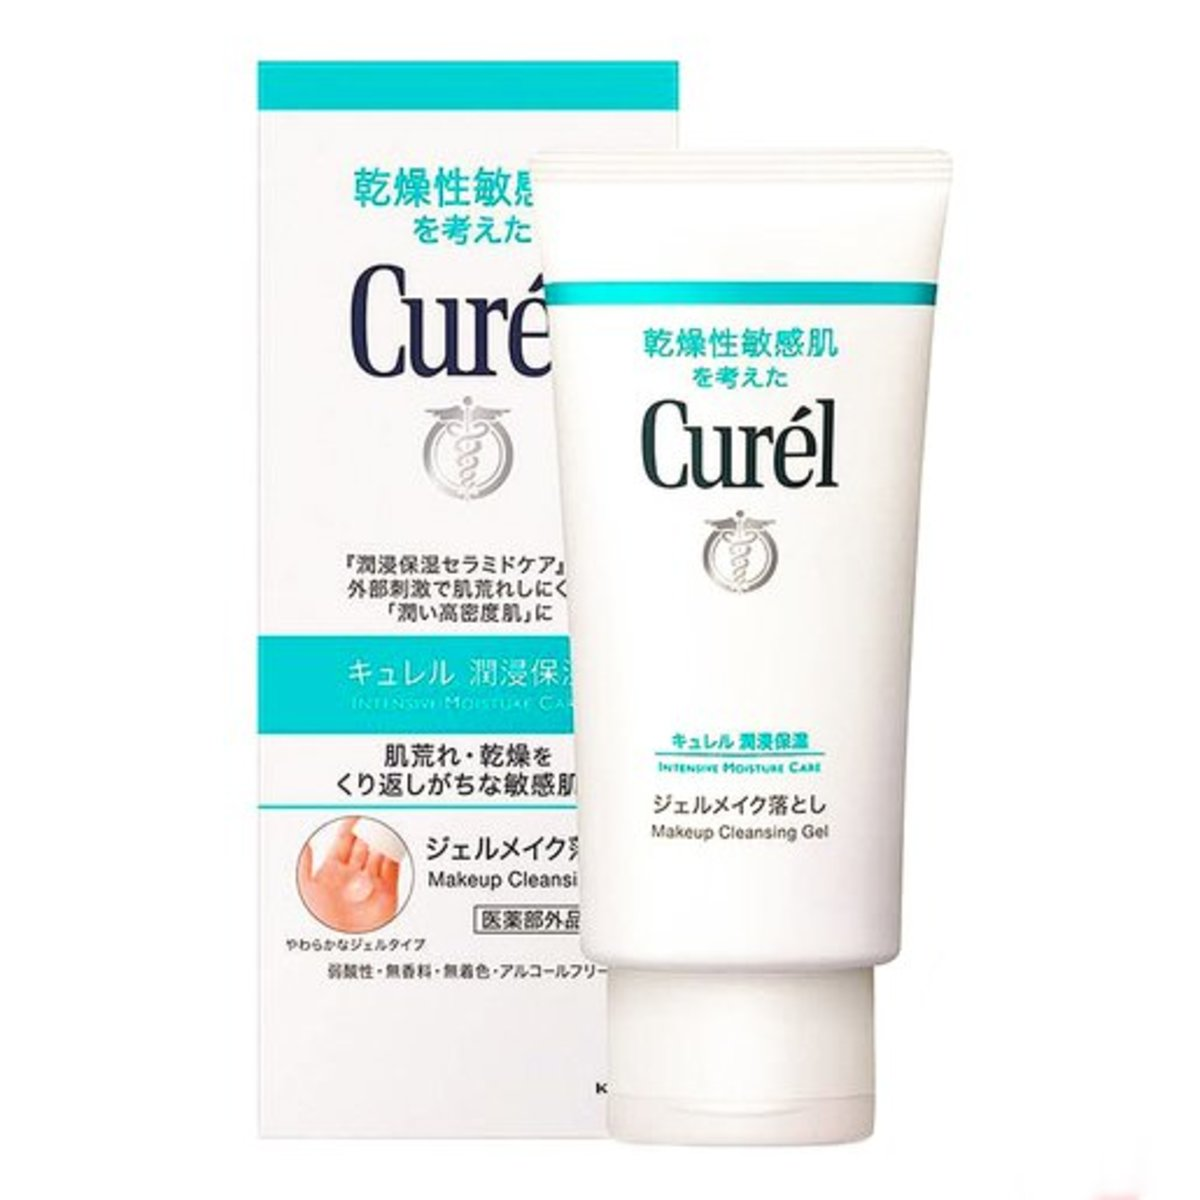 Intensive Moisture Care Makeup Cleaning Gel [4901301236203]